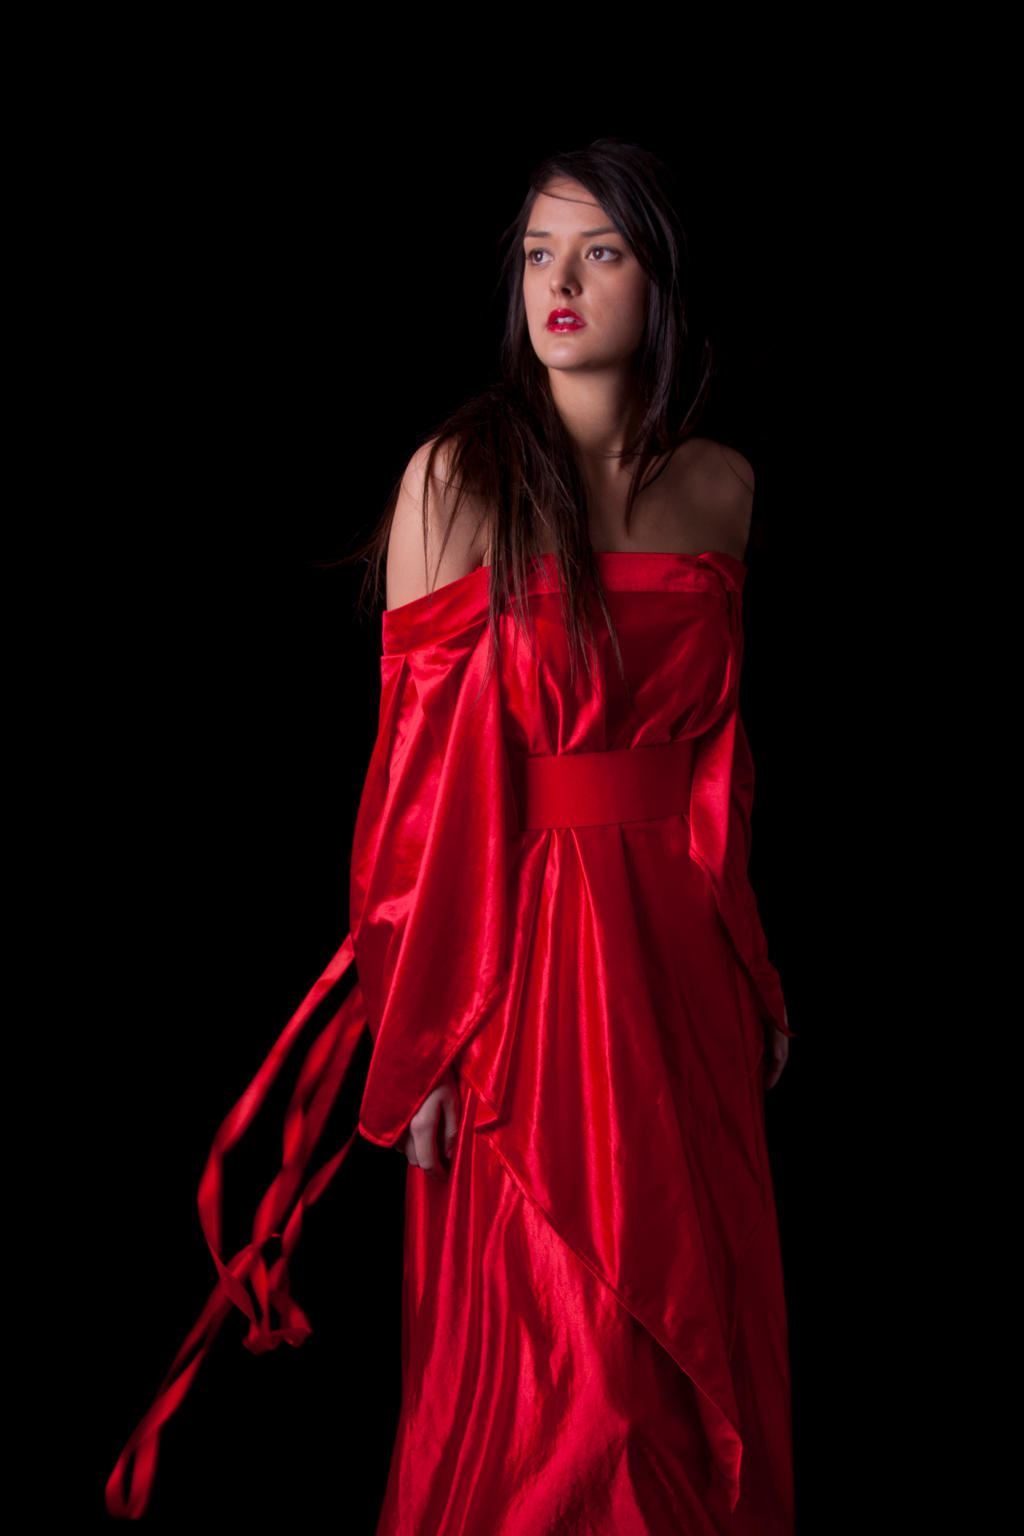 Woman in a red dress 6 by CathleenTarawhiti on DeviantArt